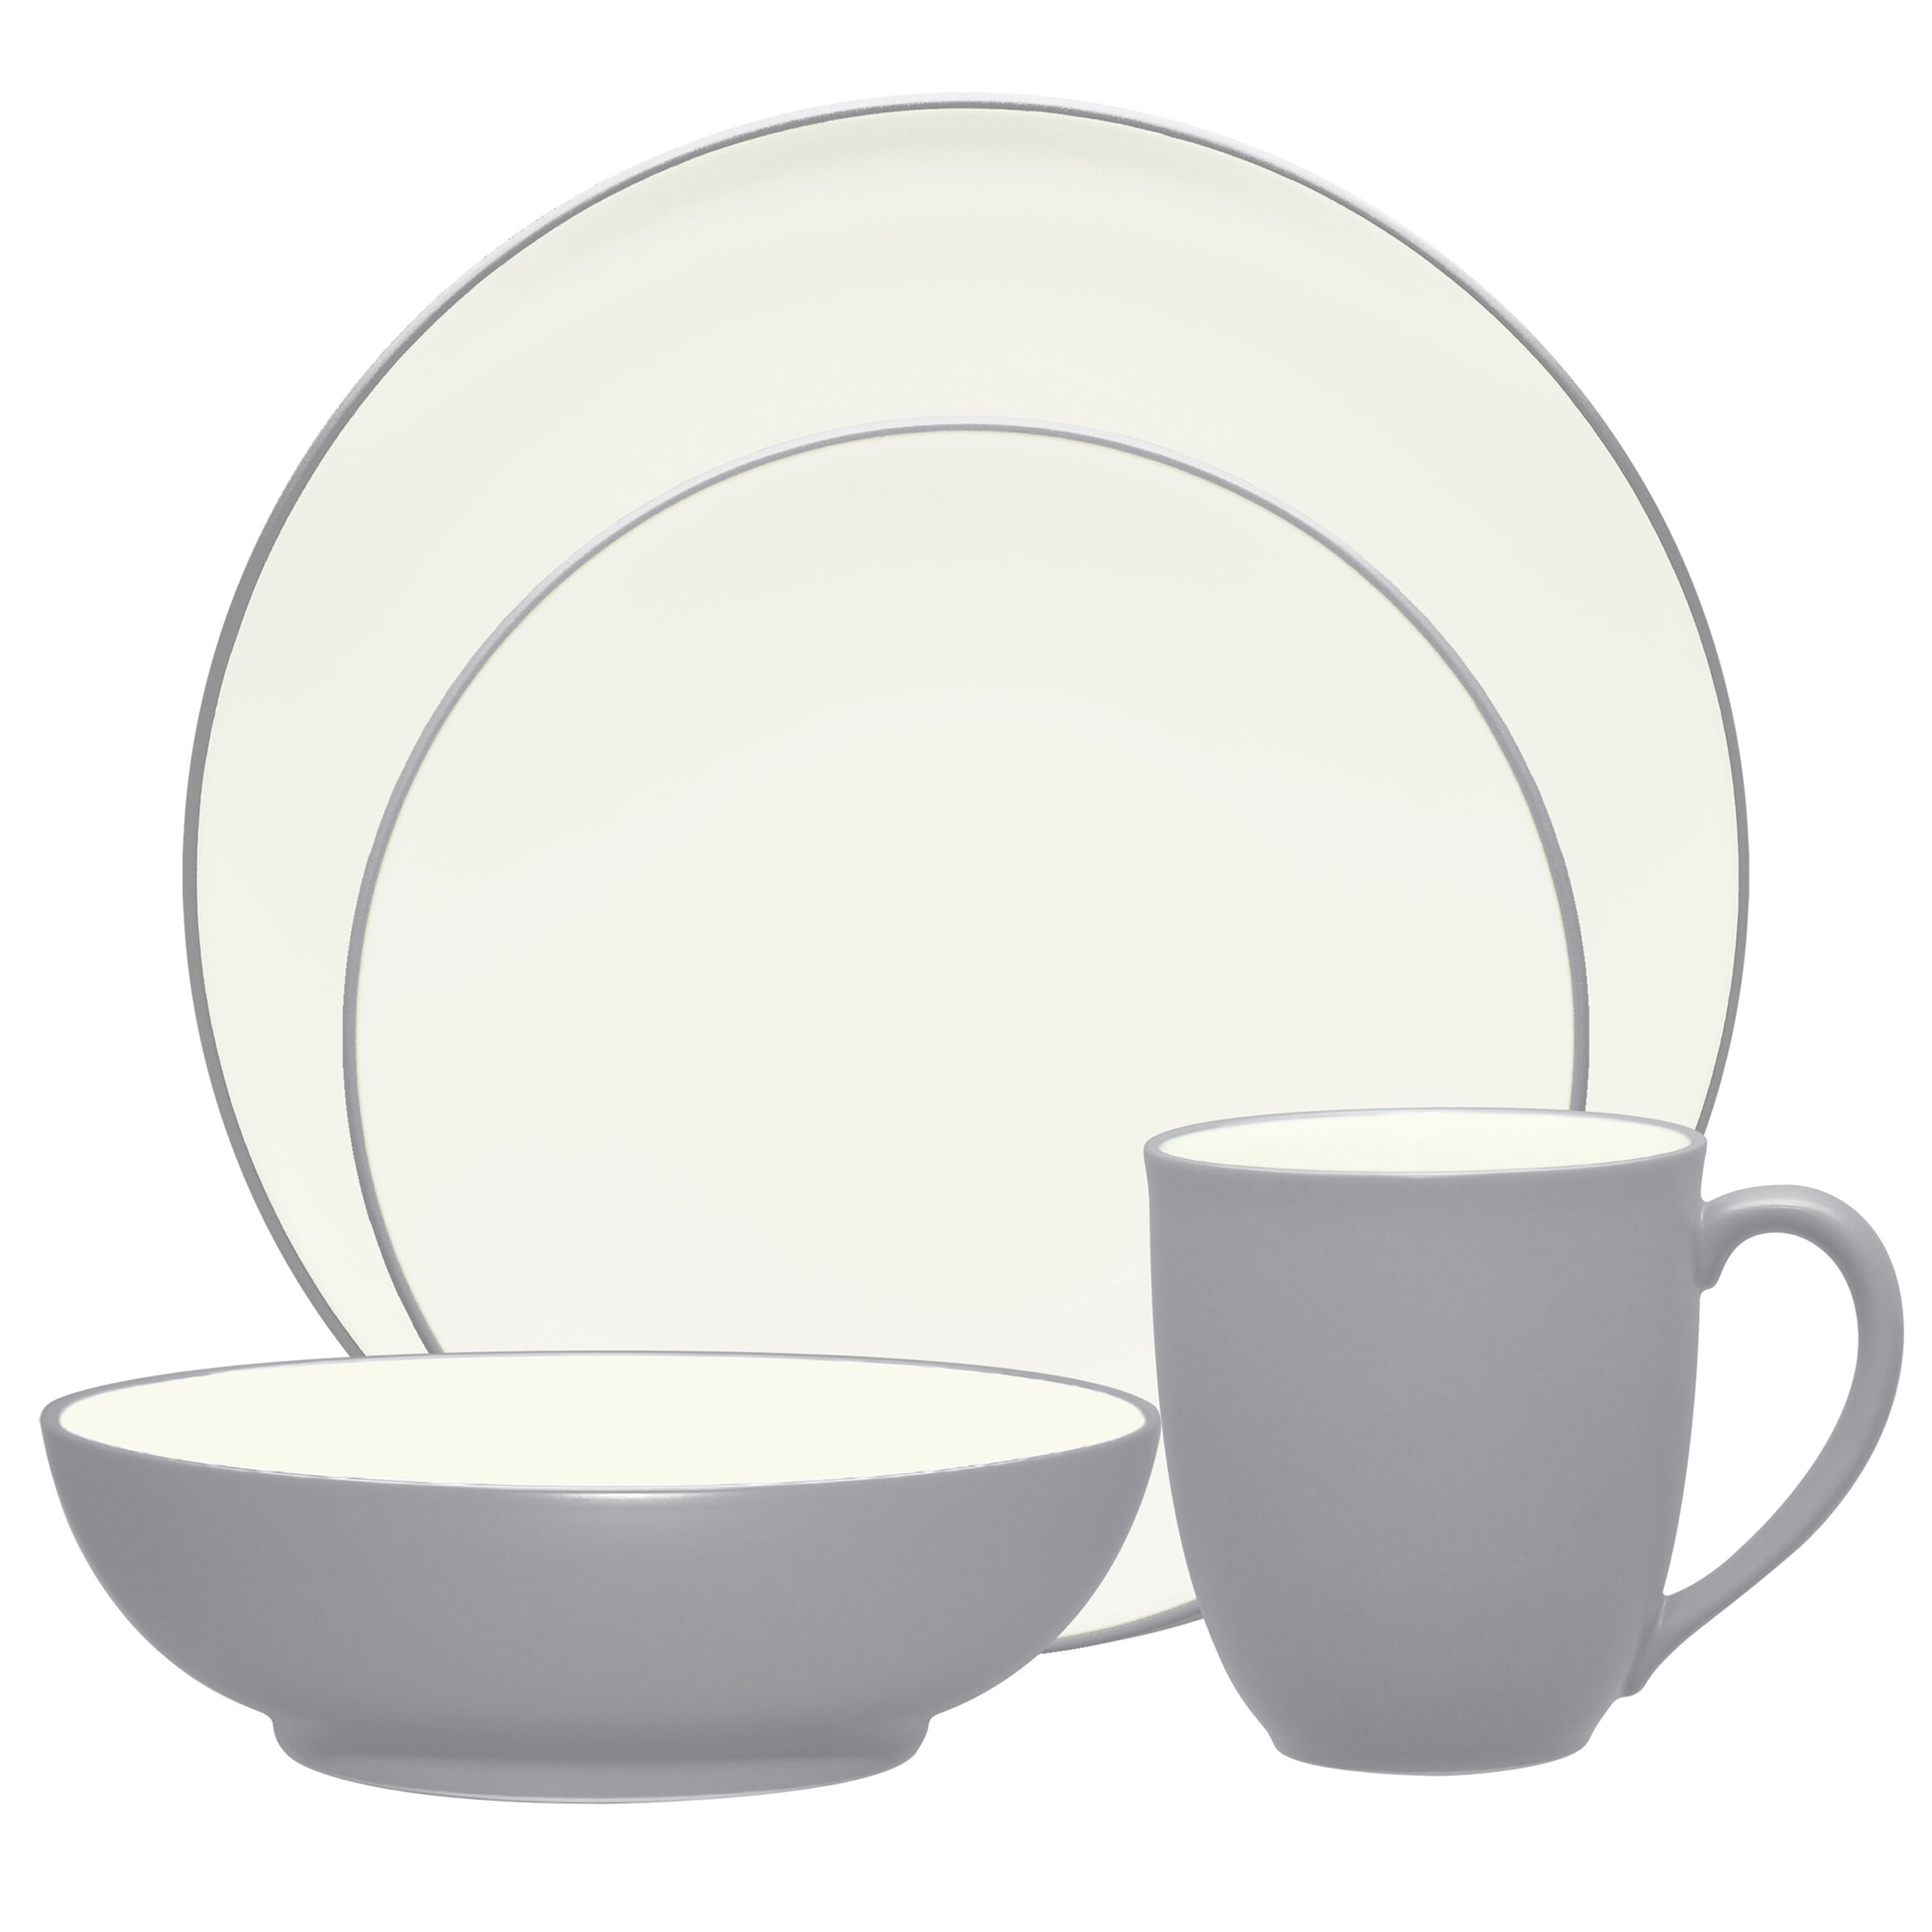 Colorwave Coupe 4 Piece Place Setting Service for 1. by Noritake  sc 1 st  Wayfair & Noritake | Wayfair